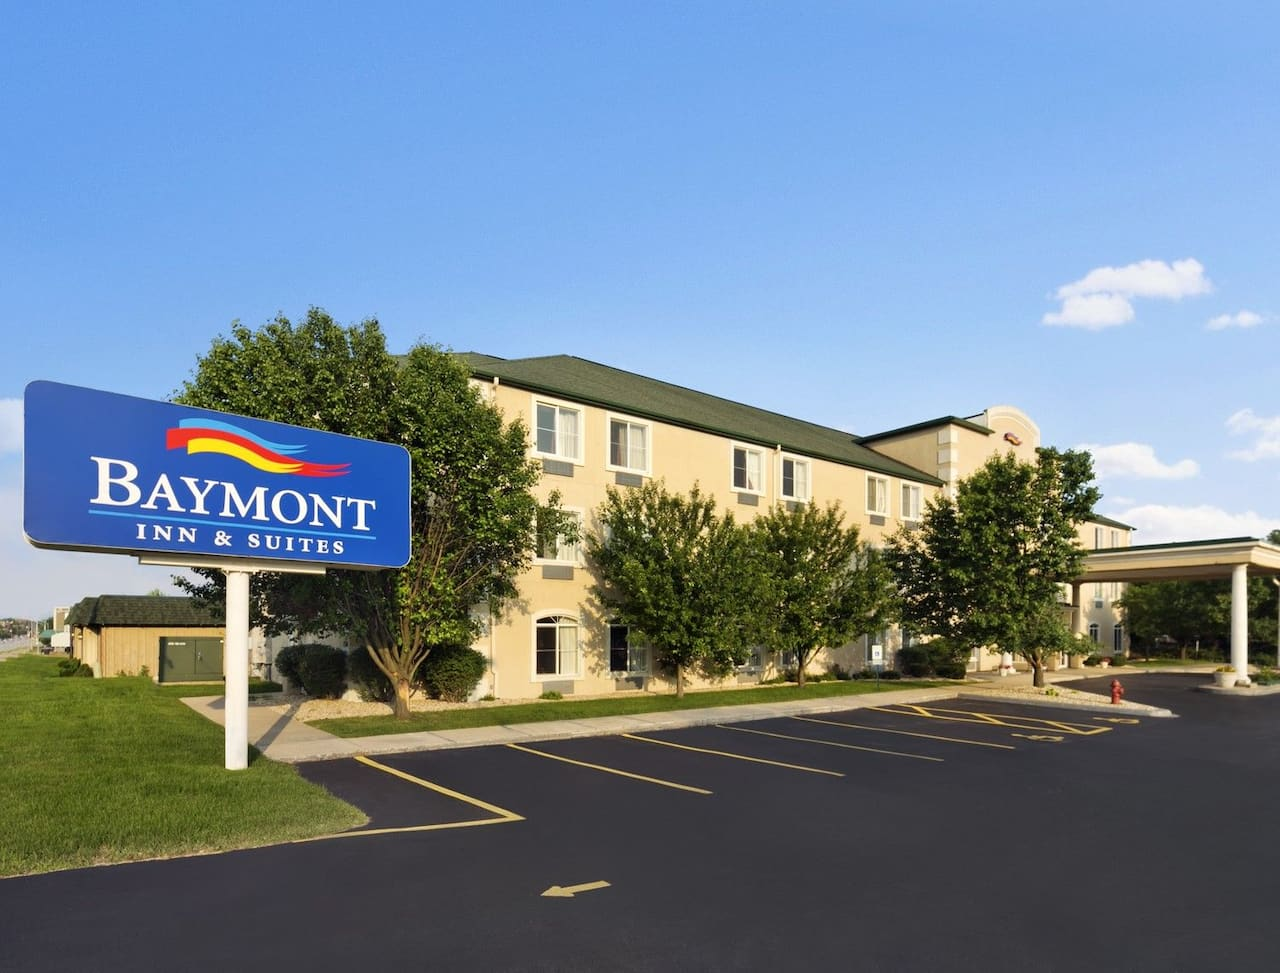 Baymont Inn & Suites DeKalb in Hinckley, Illinois